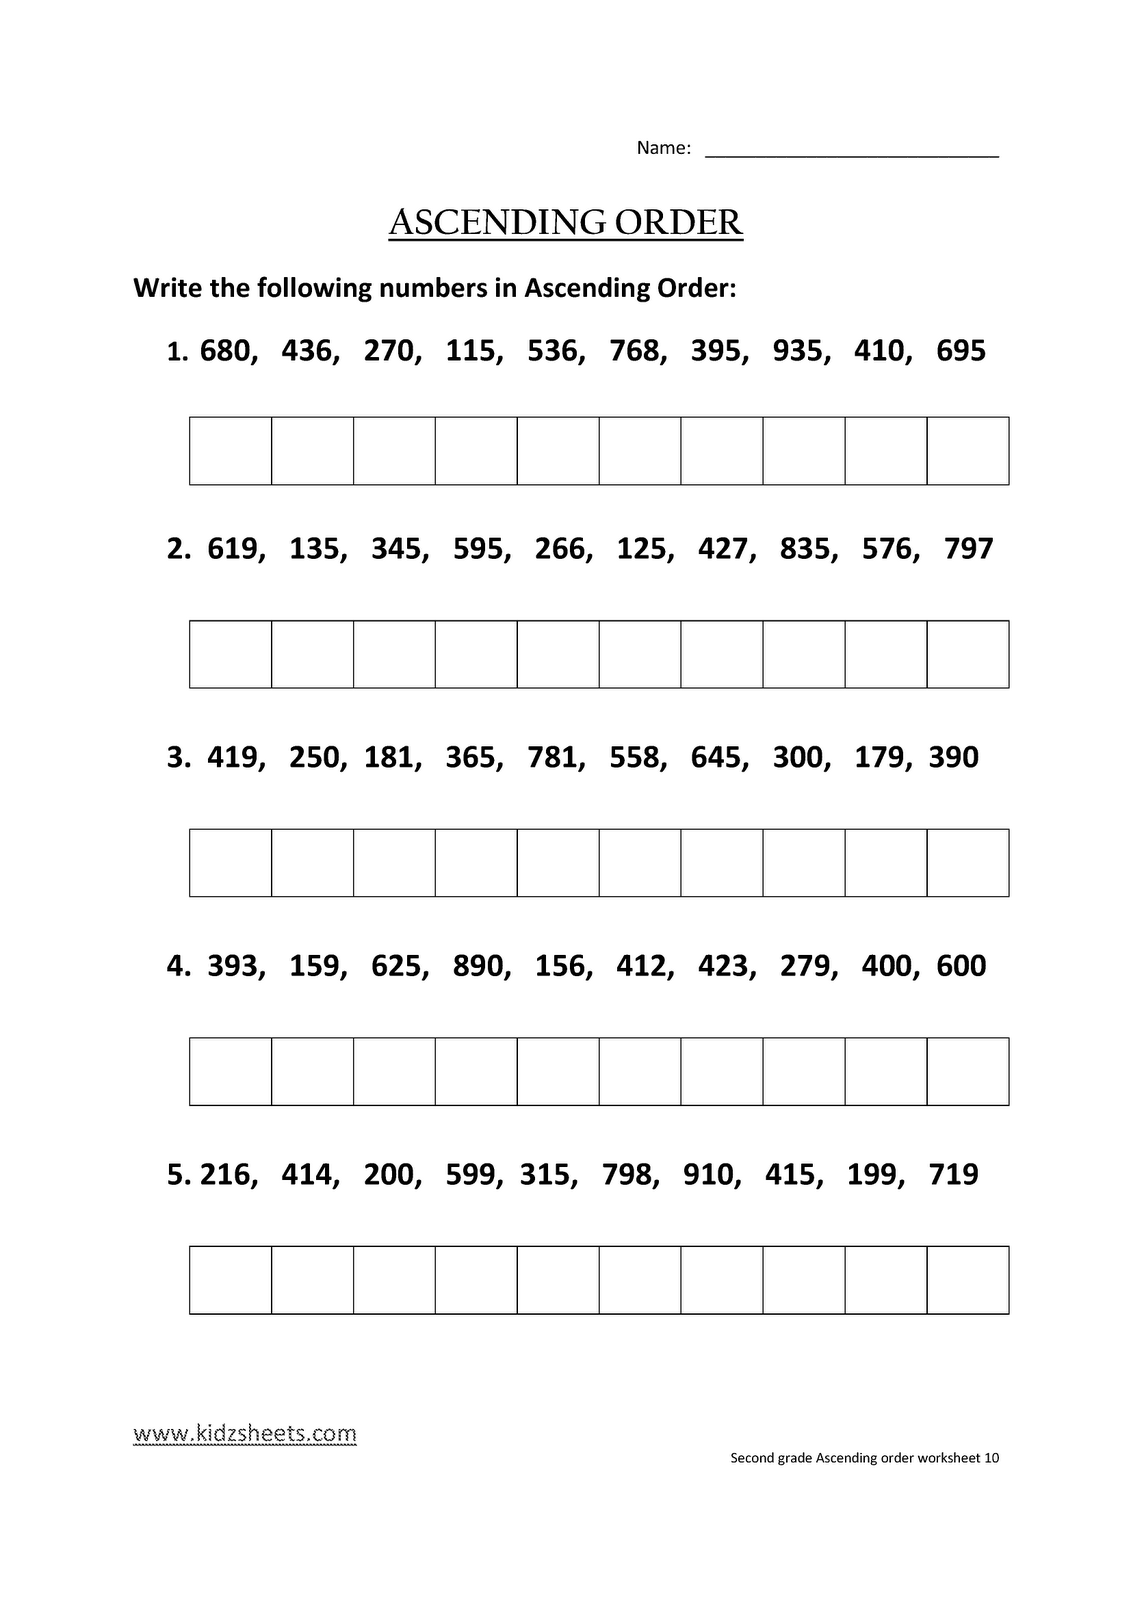 Kidz Worksheets Second Grade Ascending Order Worksheet10